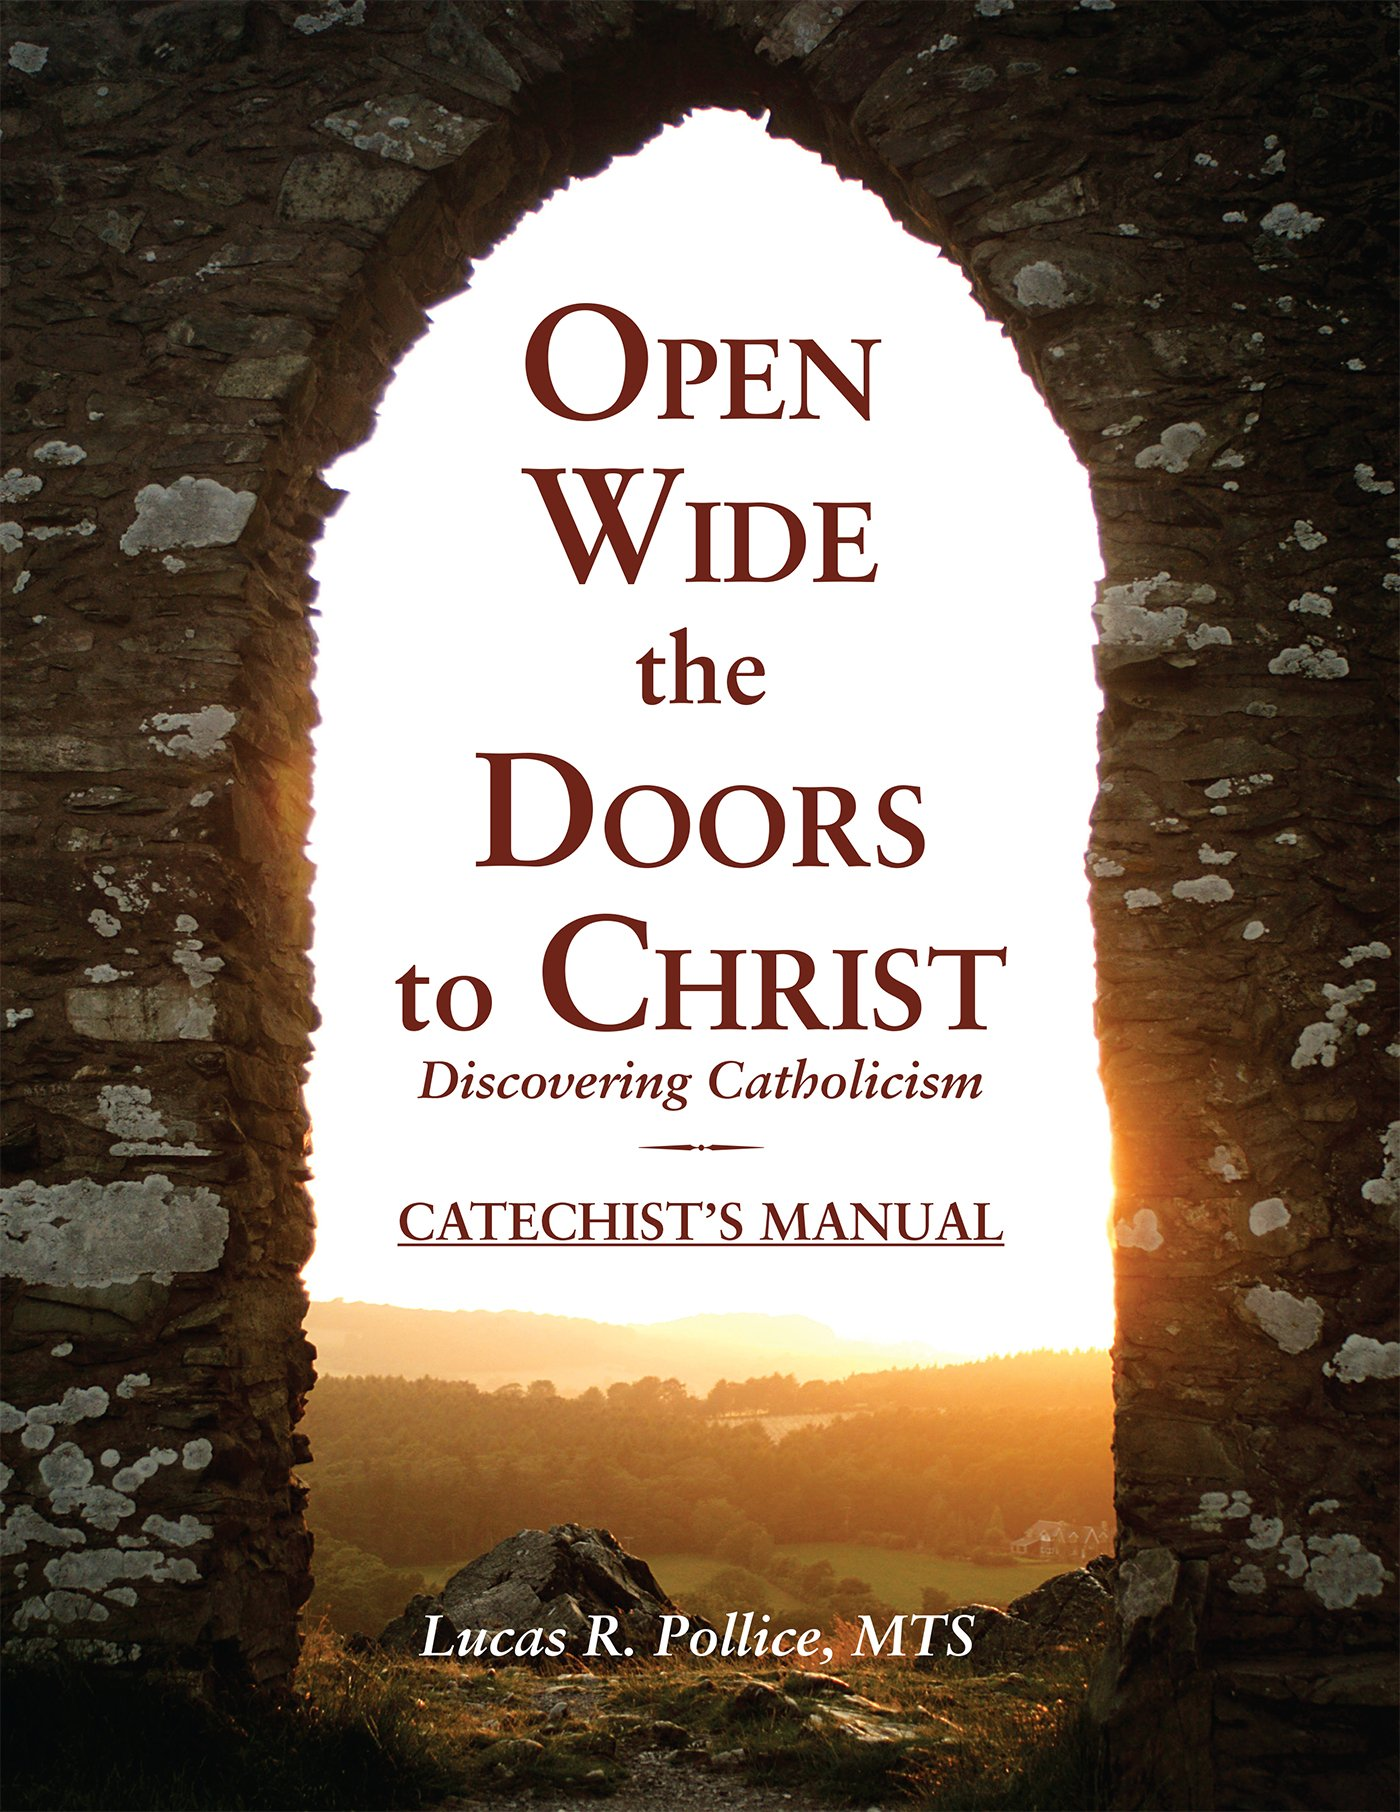 Open Wide the Doors to Christ: Discovering Catholicism CATECHIST'S MANUAL